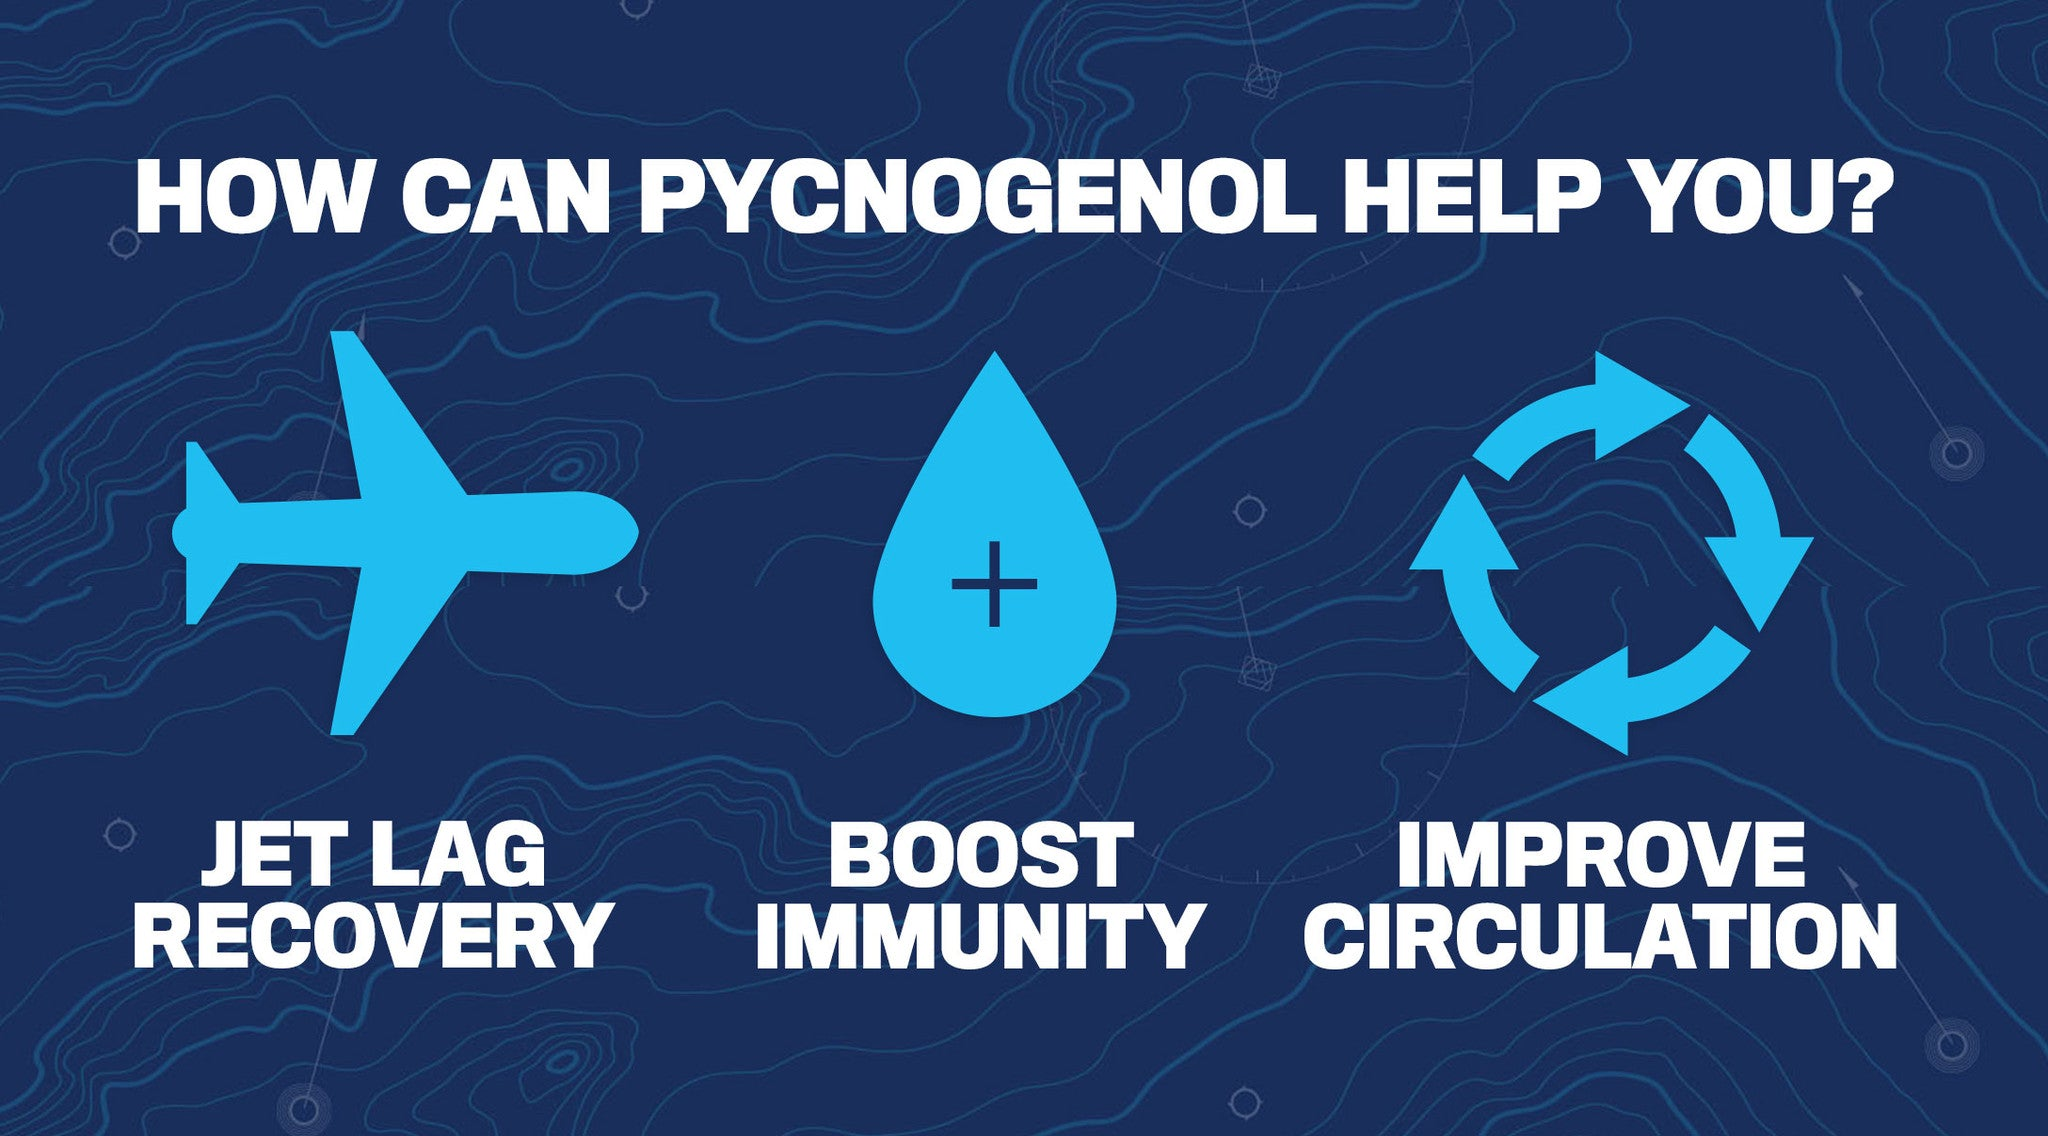 KEY THINGS TO KNOW ABOUT PYCNOGENOL